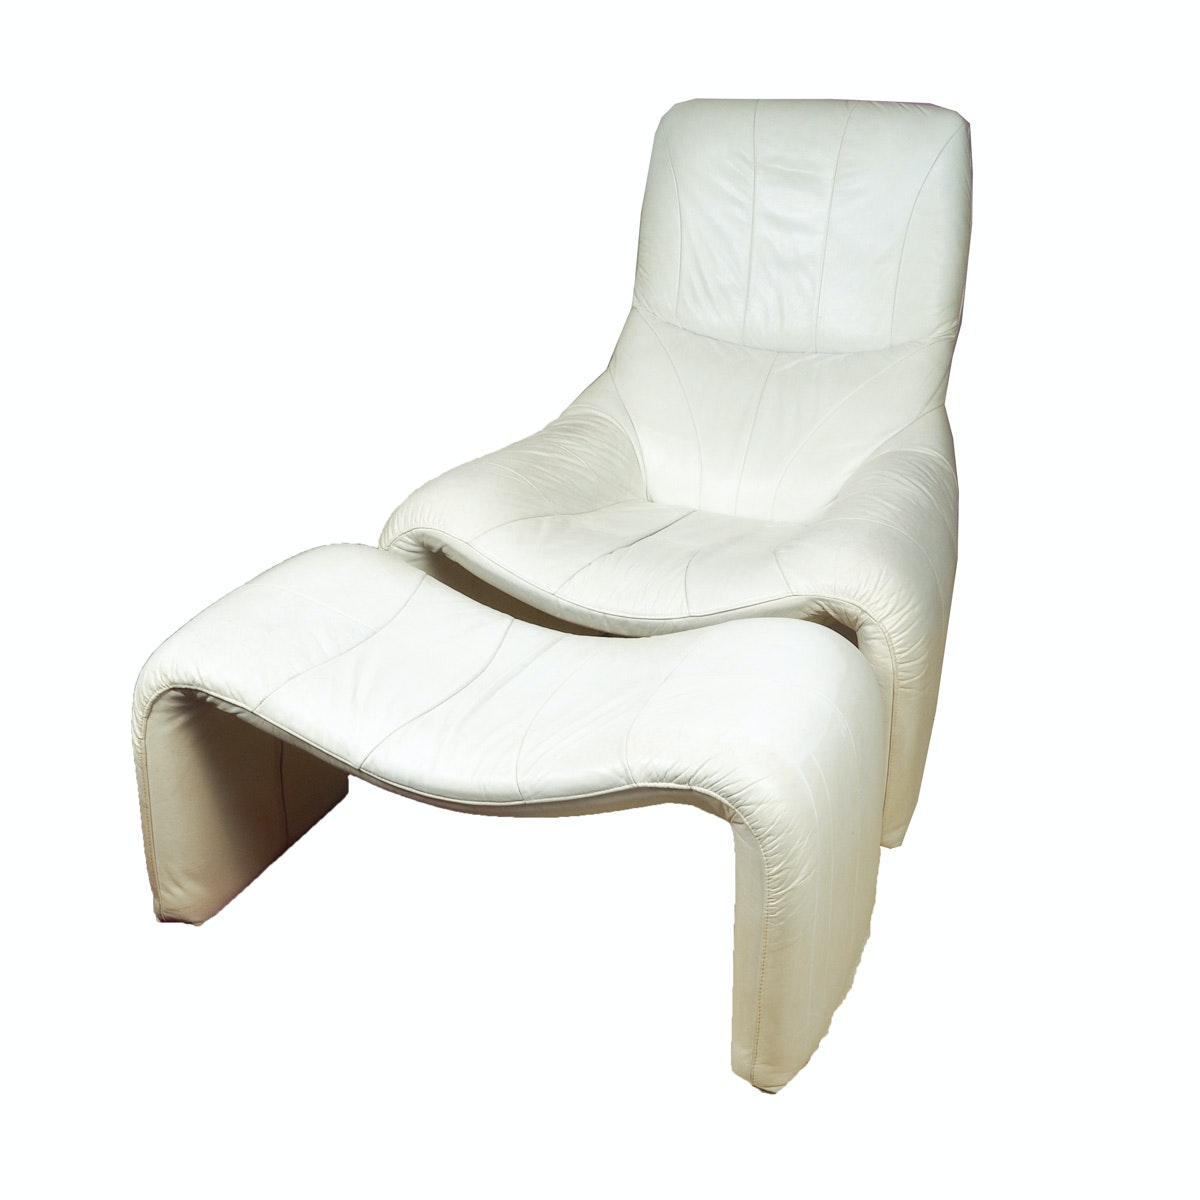 Contemporary White Leather Chair and Ottoman